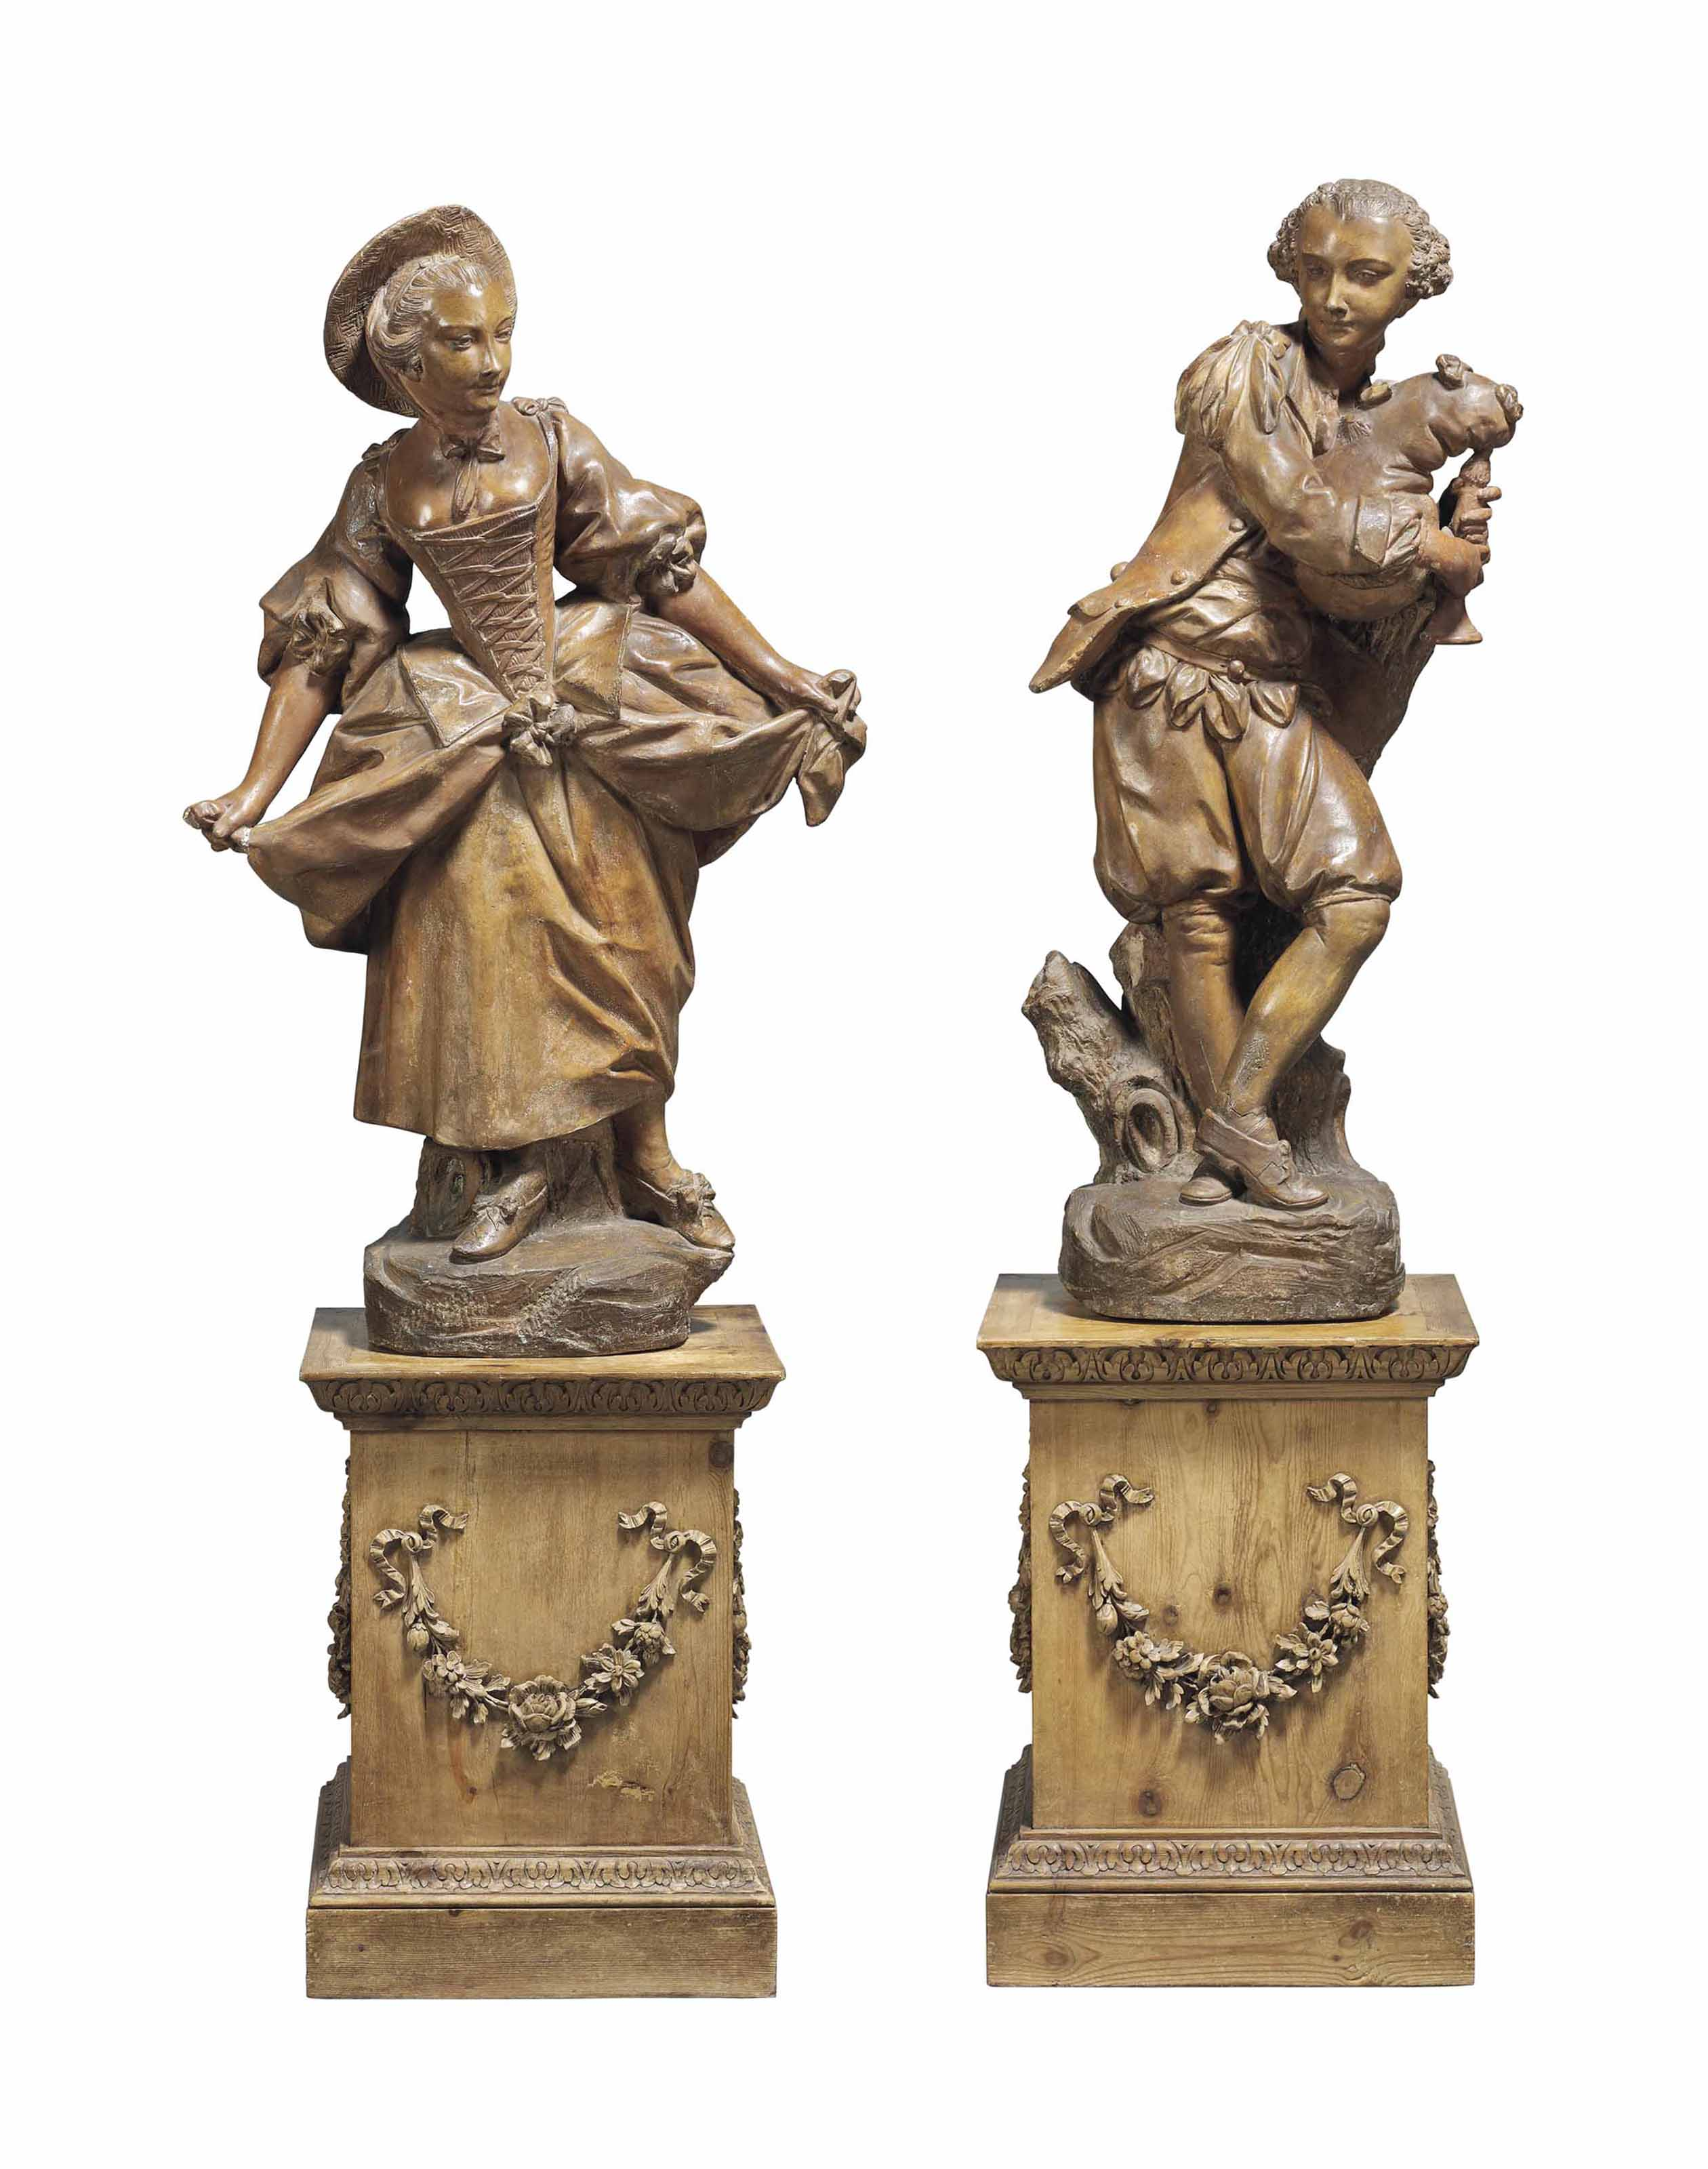 A PAIR OF FRENCH TERRACOTTA STANDING FIGURES